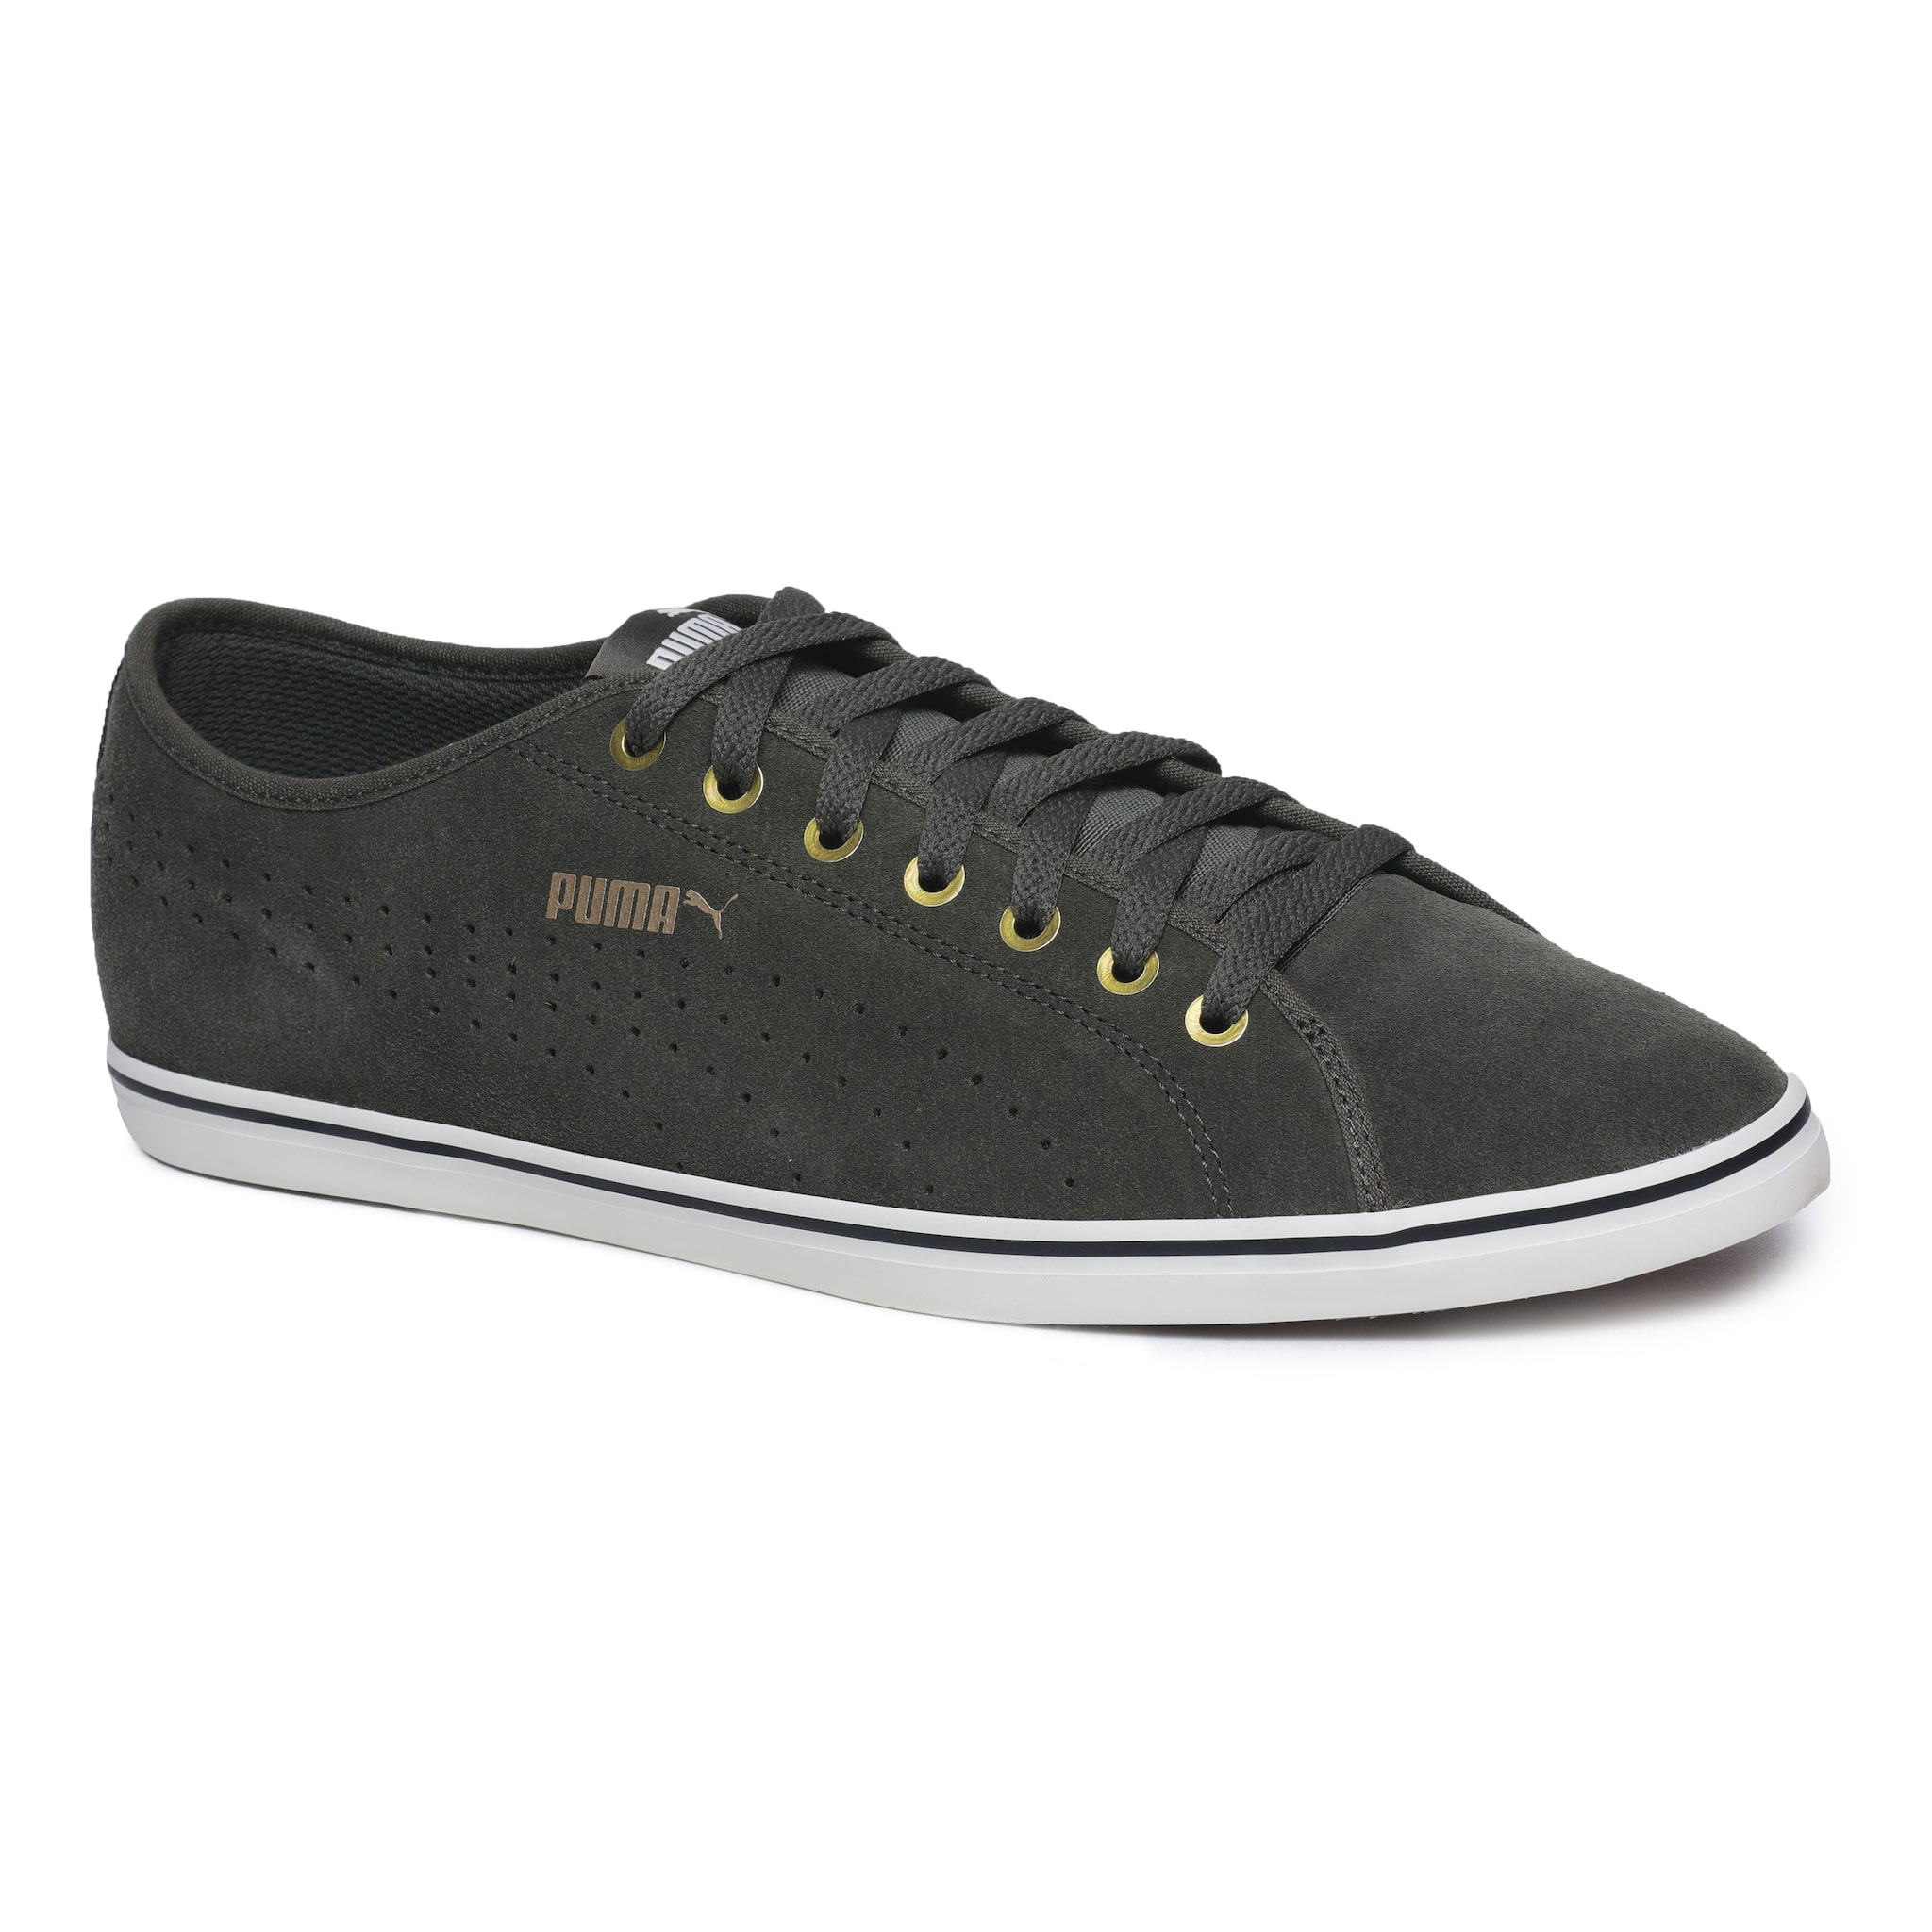 d056f2e8465f Buy Puma Men Green Sneakers - 36120205 Online at Low Prices in India ...